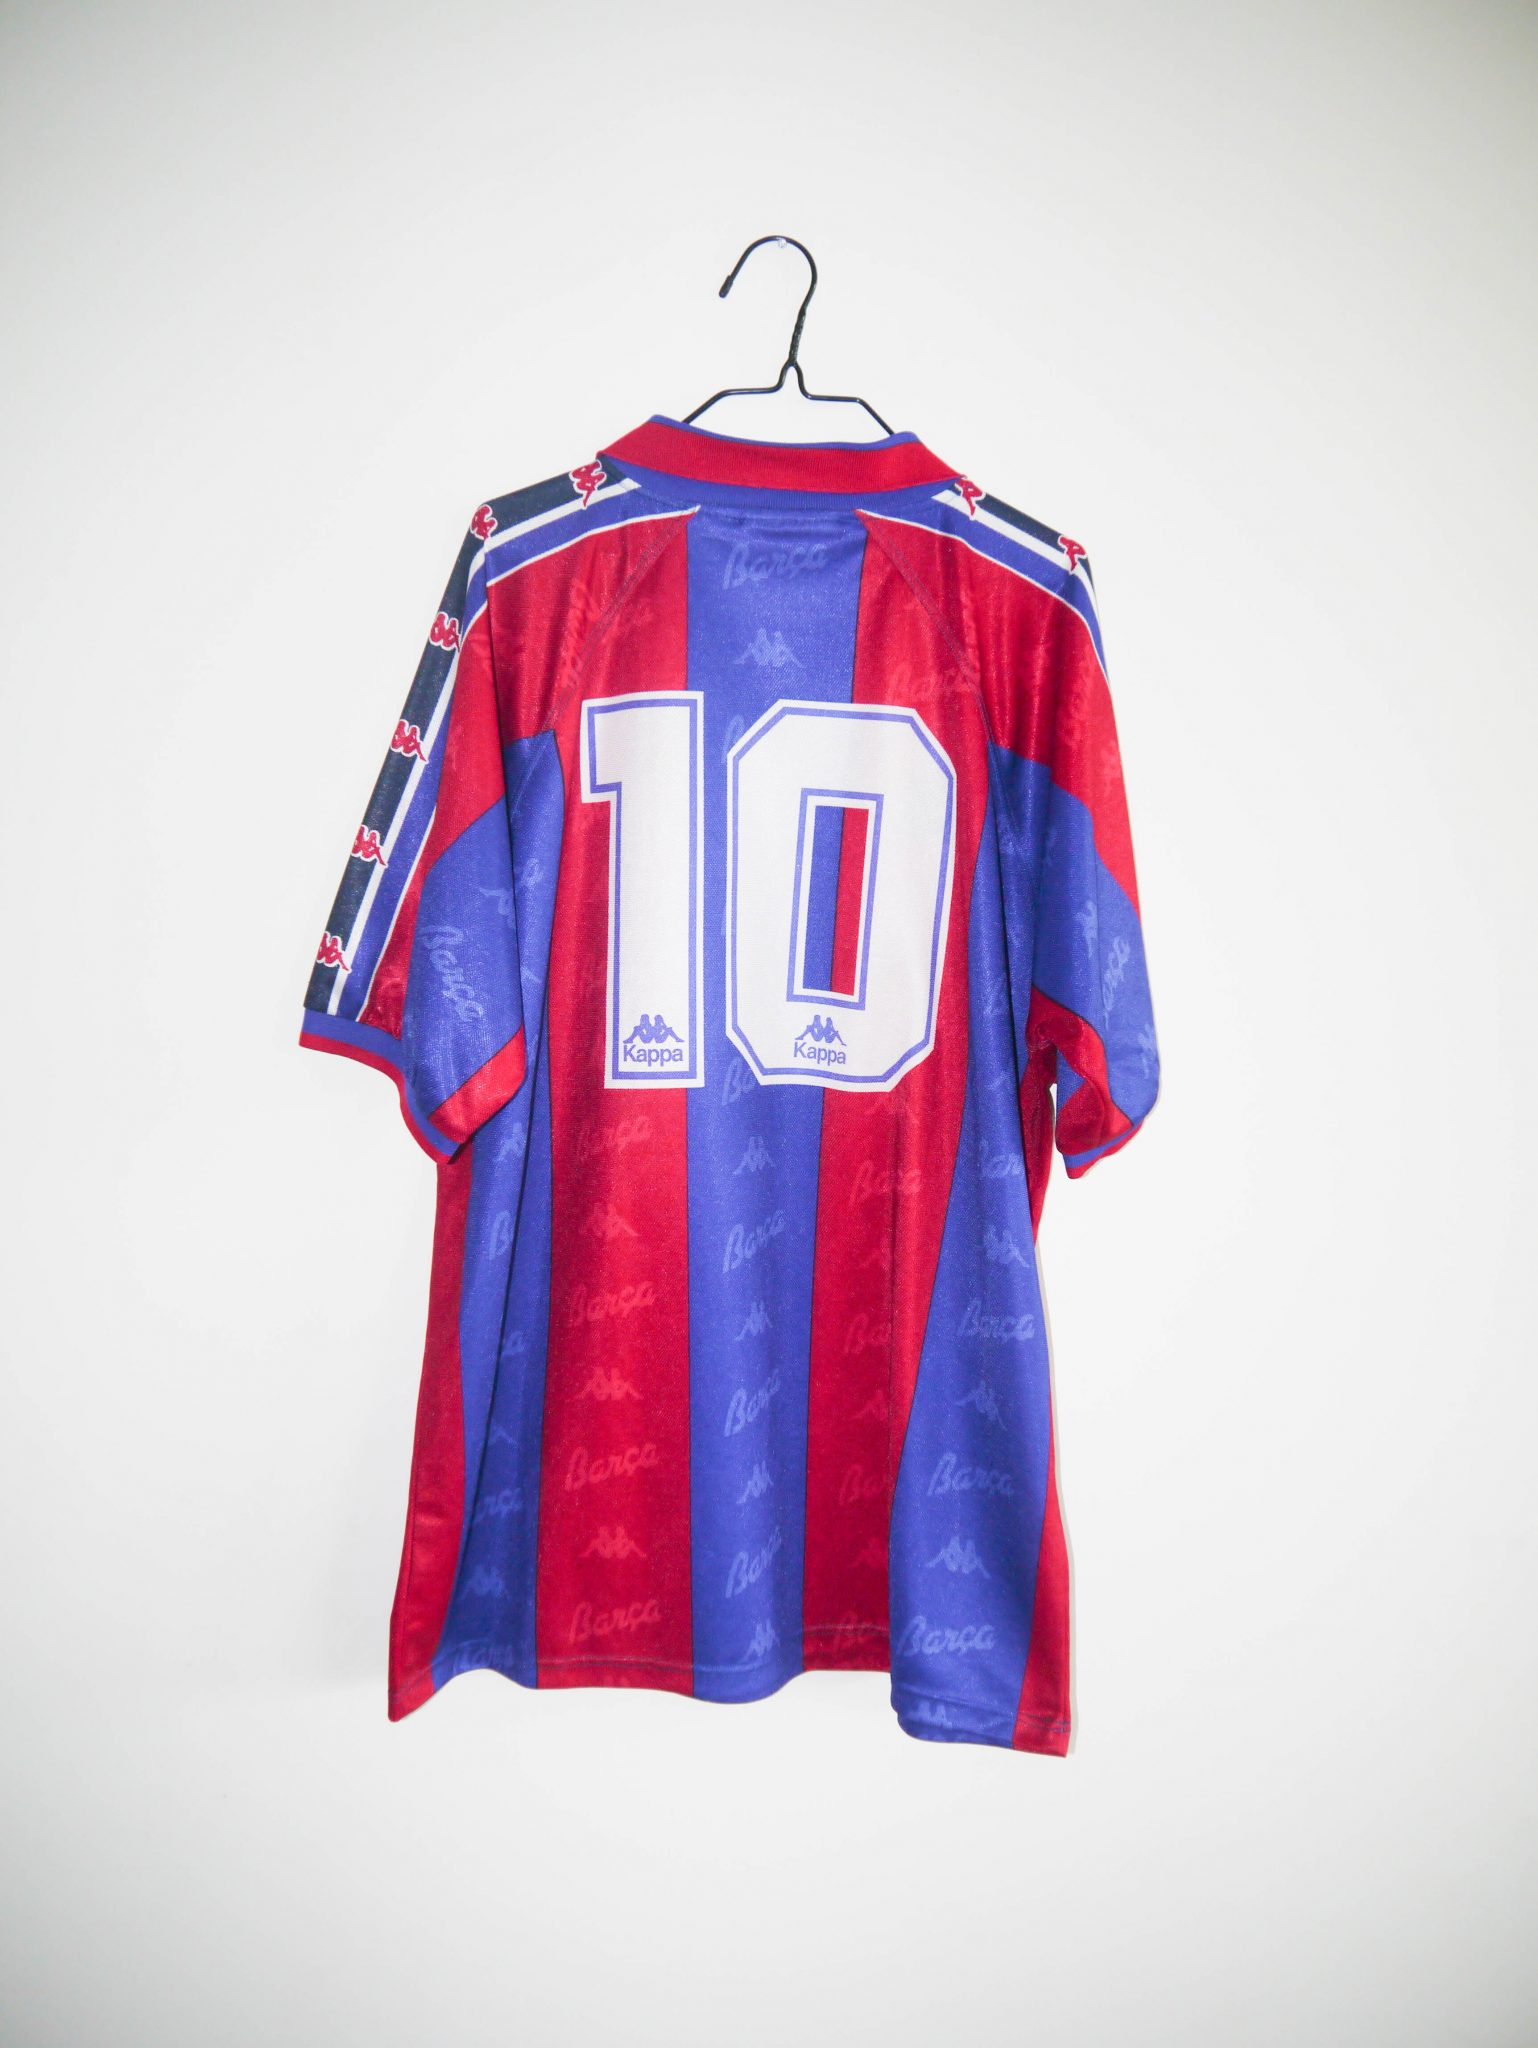 buy online 306be 8d328 Original 1995-96 FC Barcelona *PLAYER ISSUE* home jersey (#10) - XL